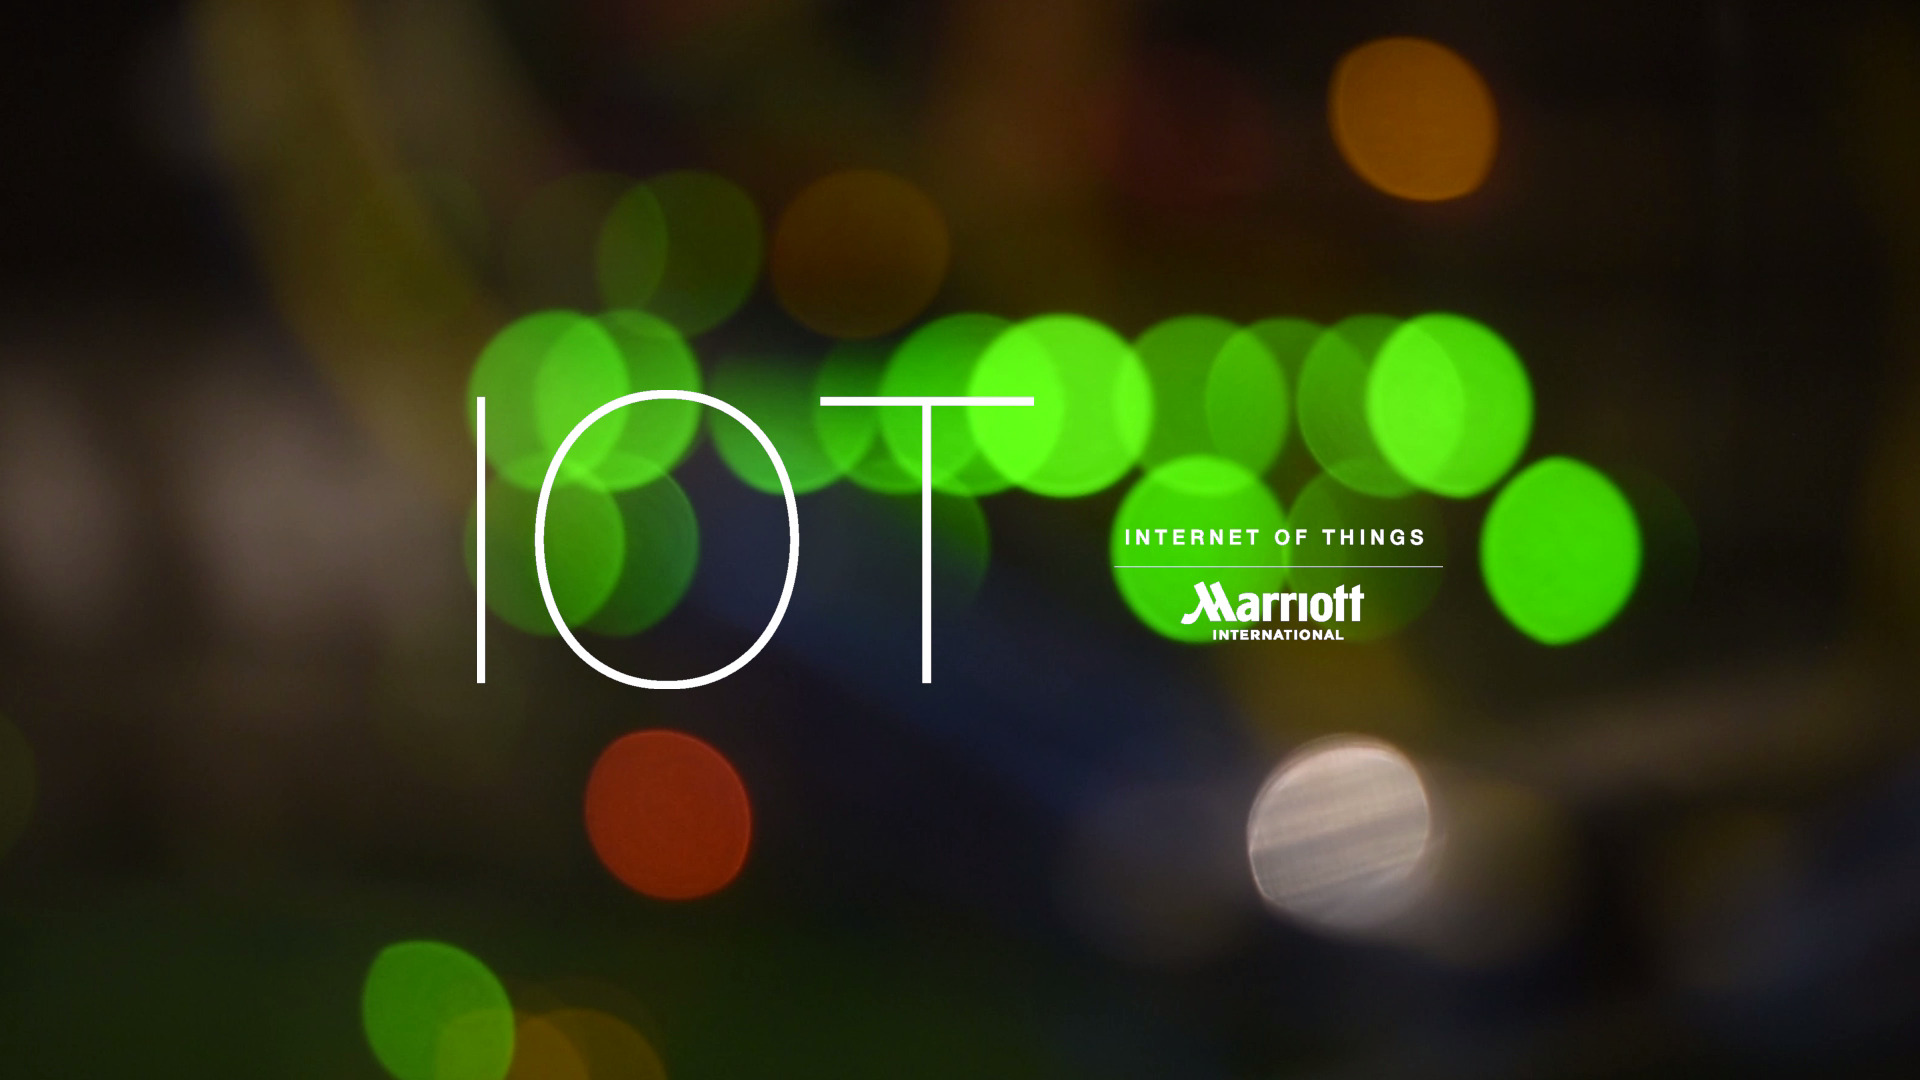 Why is Marriott International thinking about IoT? This behind-the-scenes video features key executives from Marriott International, Samsung and Legrand as they work to create the hotel room of the (near) future.